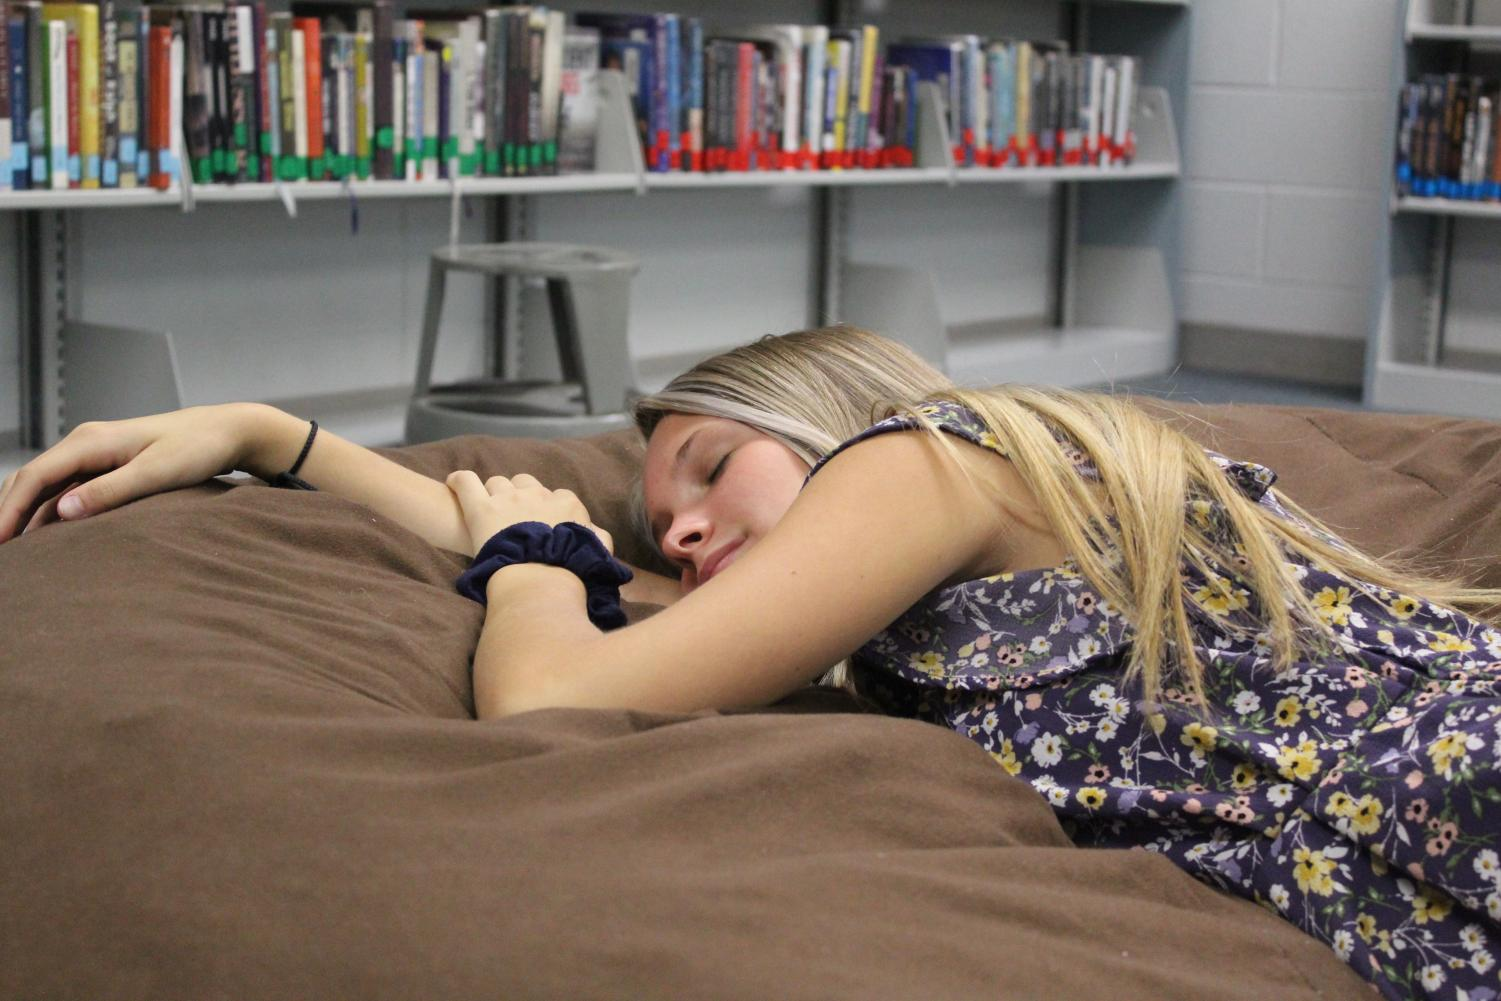 Lindsey Randolph (fake) Napping on Beanbag in Media Center